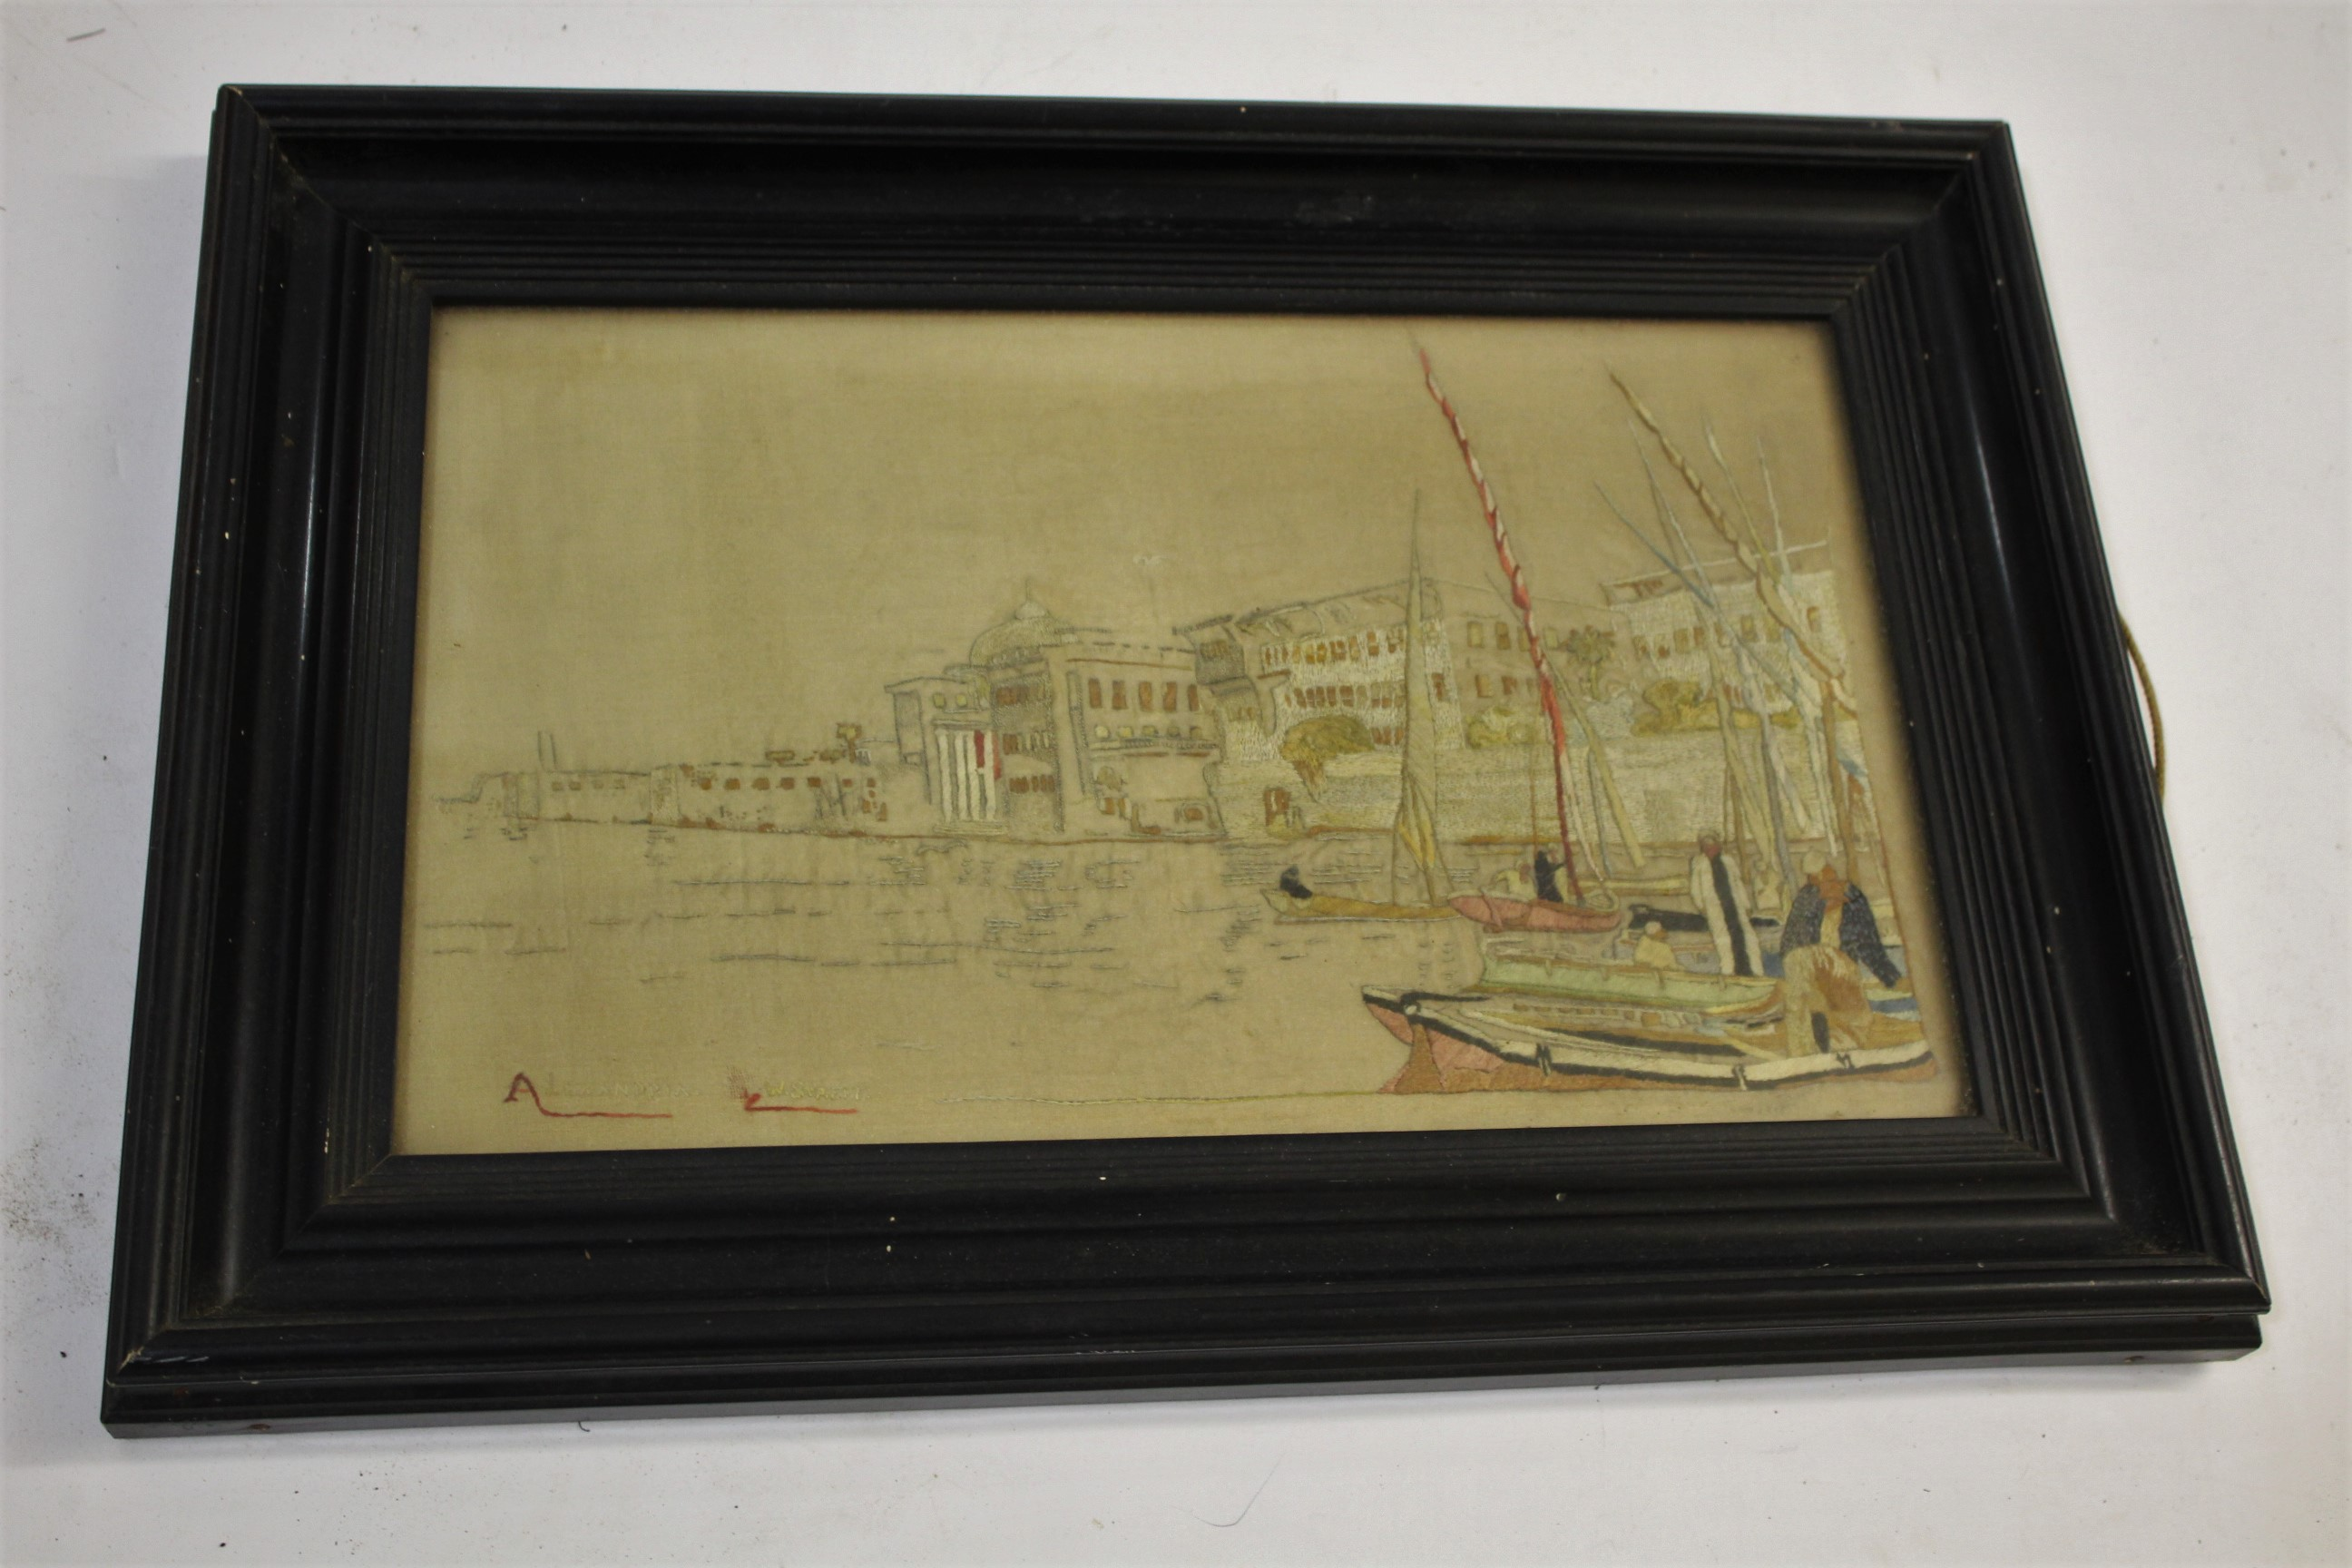 Lot 1879 - EMBROIDERED PICTURE OF ALEXANDRIA - W STREET an embroidered panel of a scene in Alexandria, signed